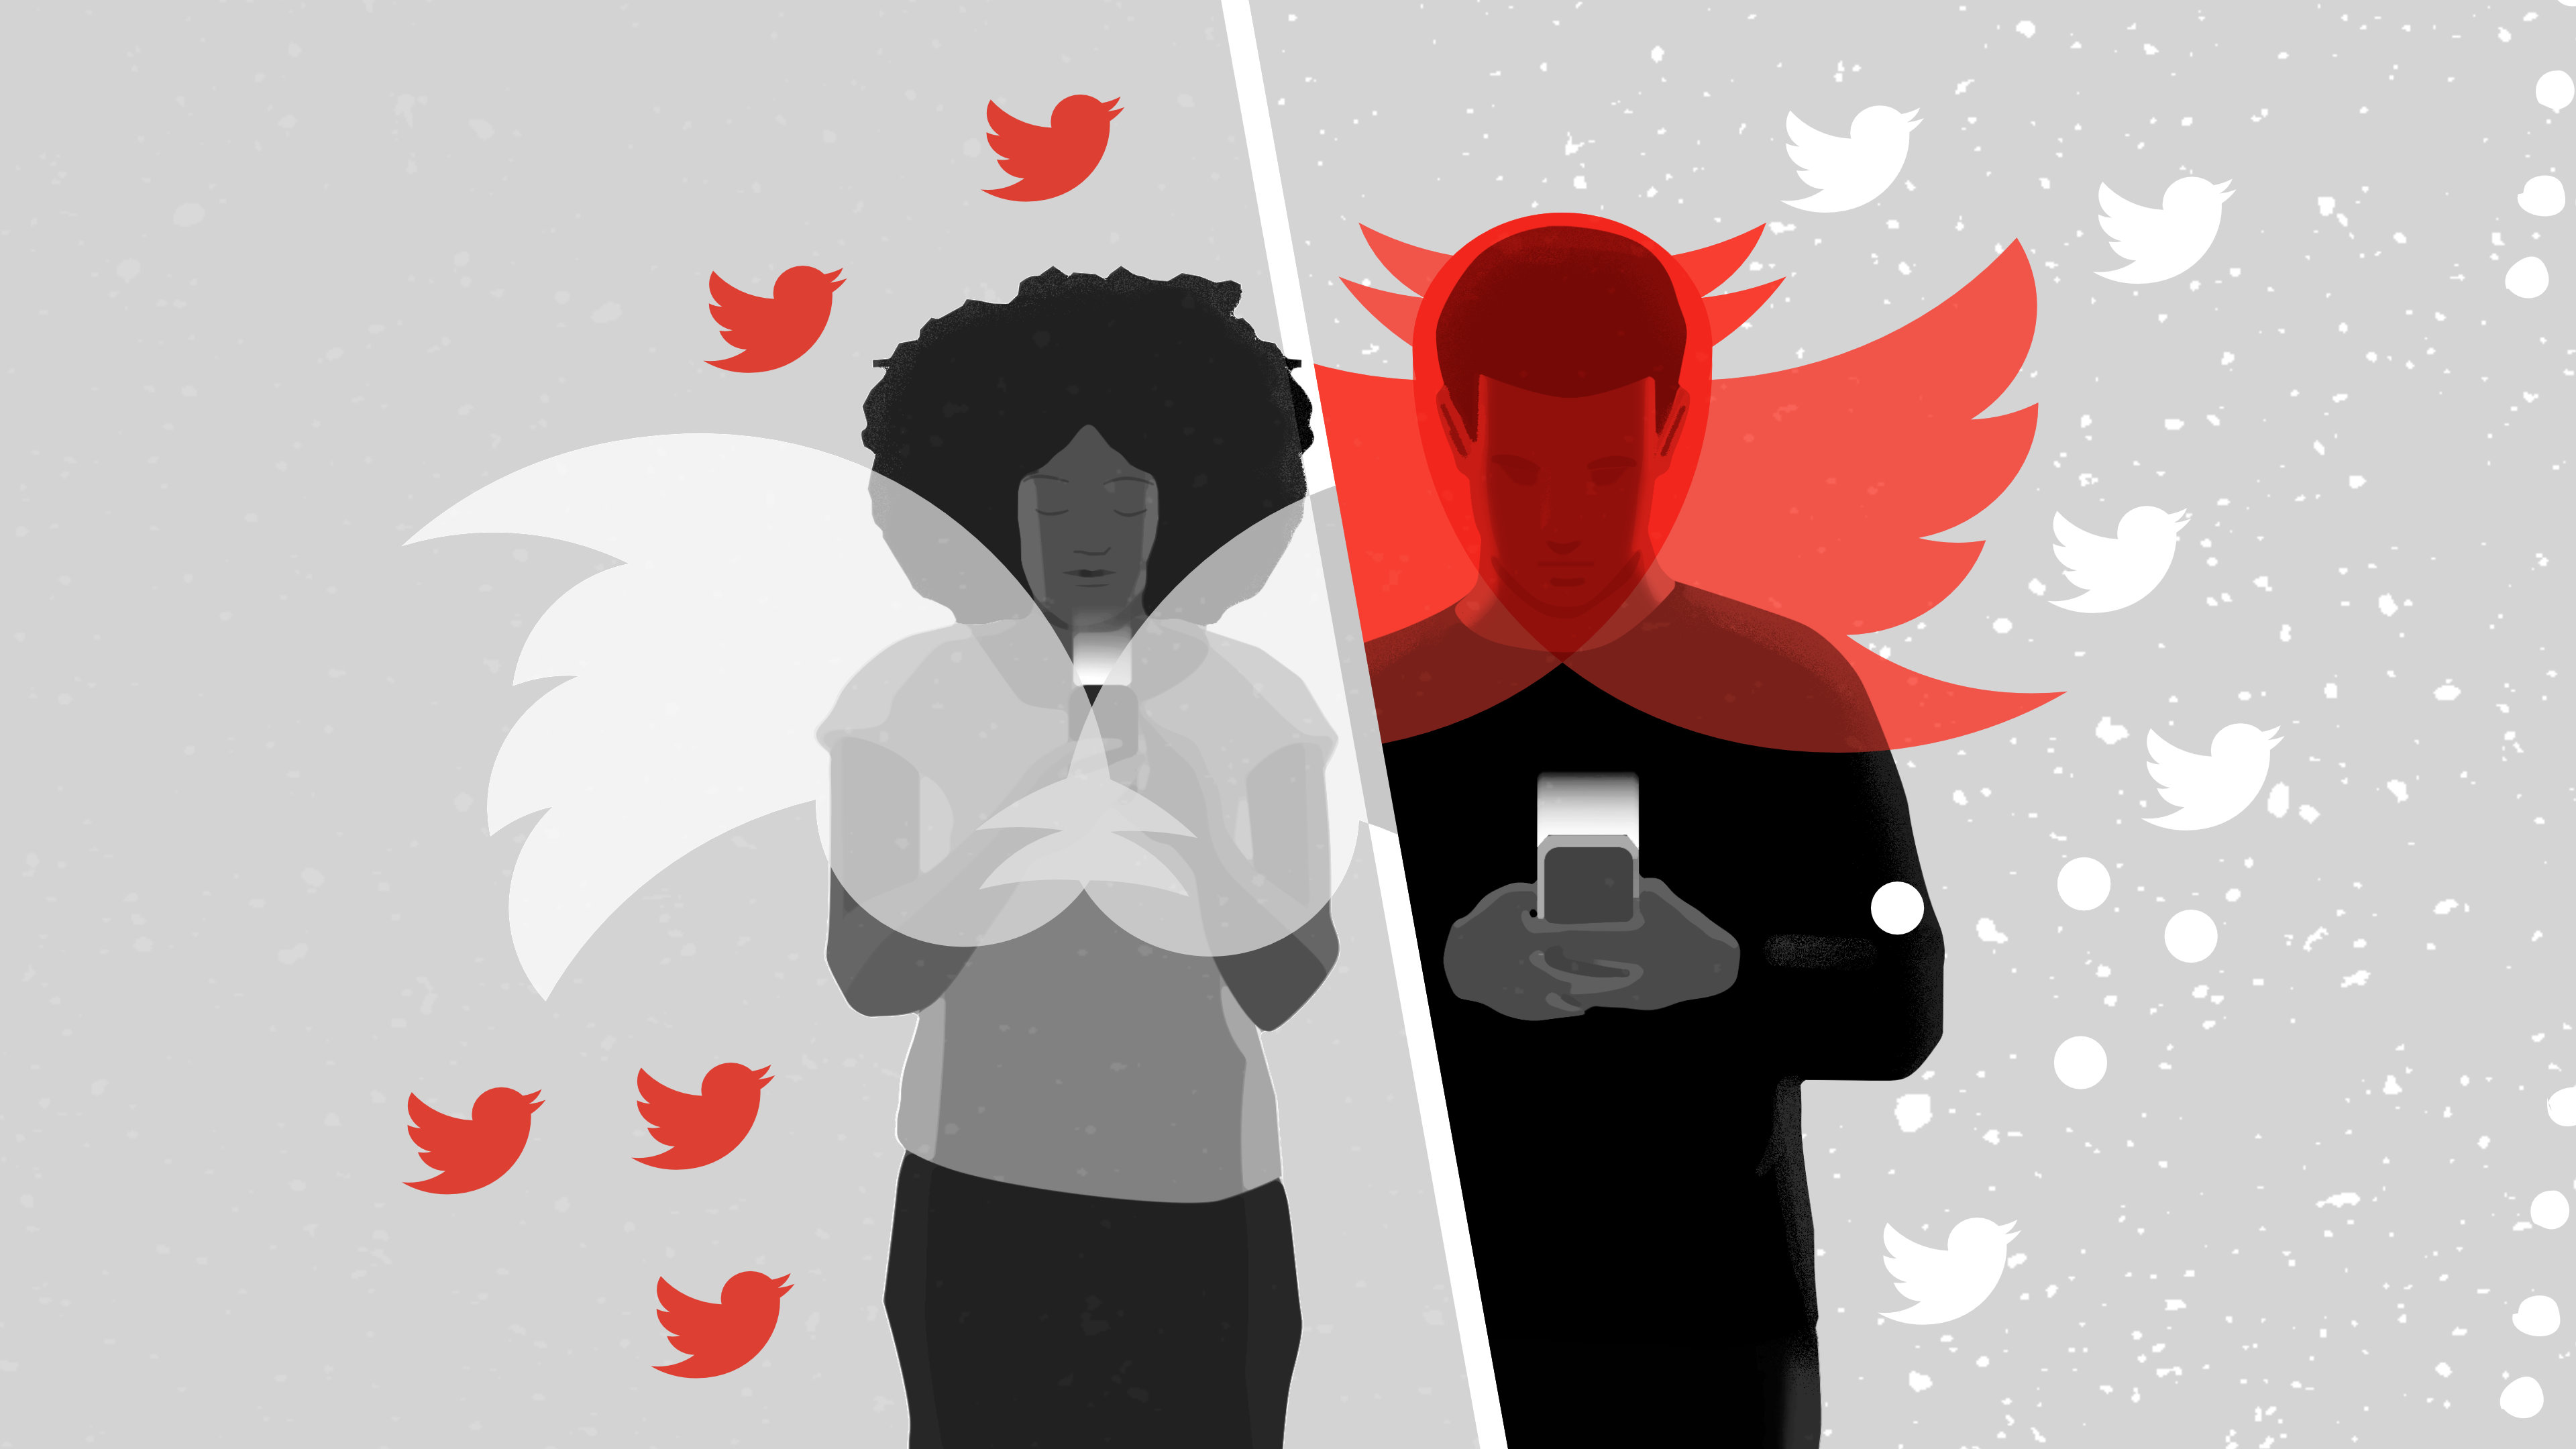 A person with angel wings and a person with devil wings using smartphones.